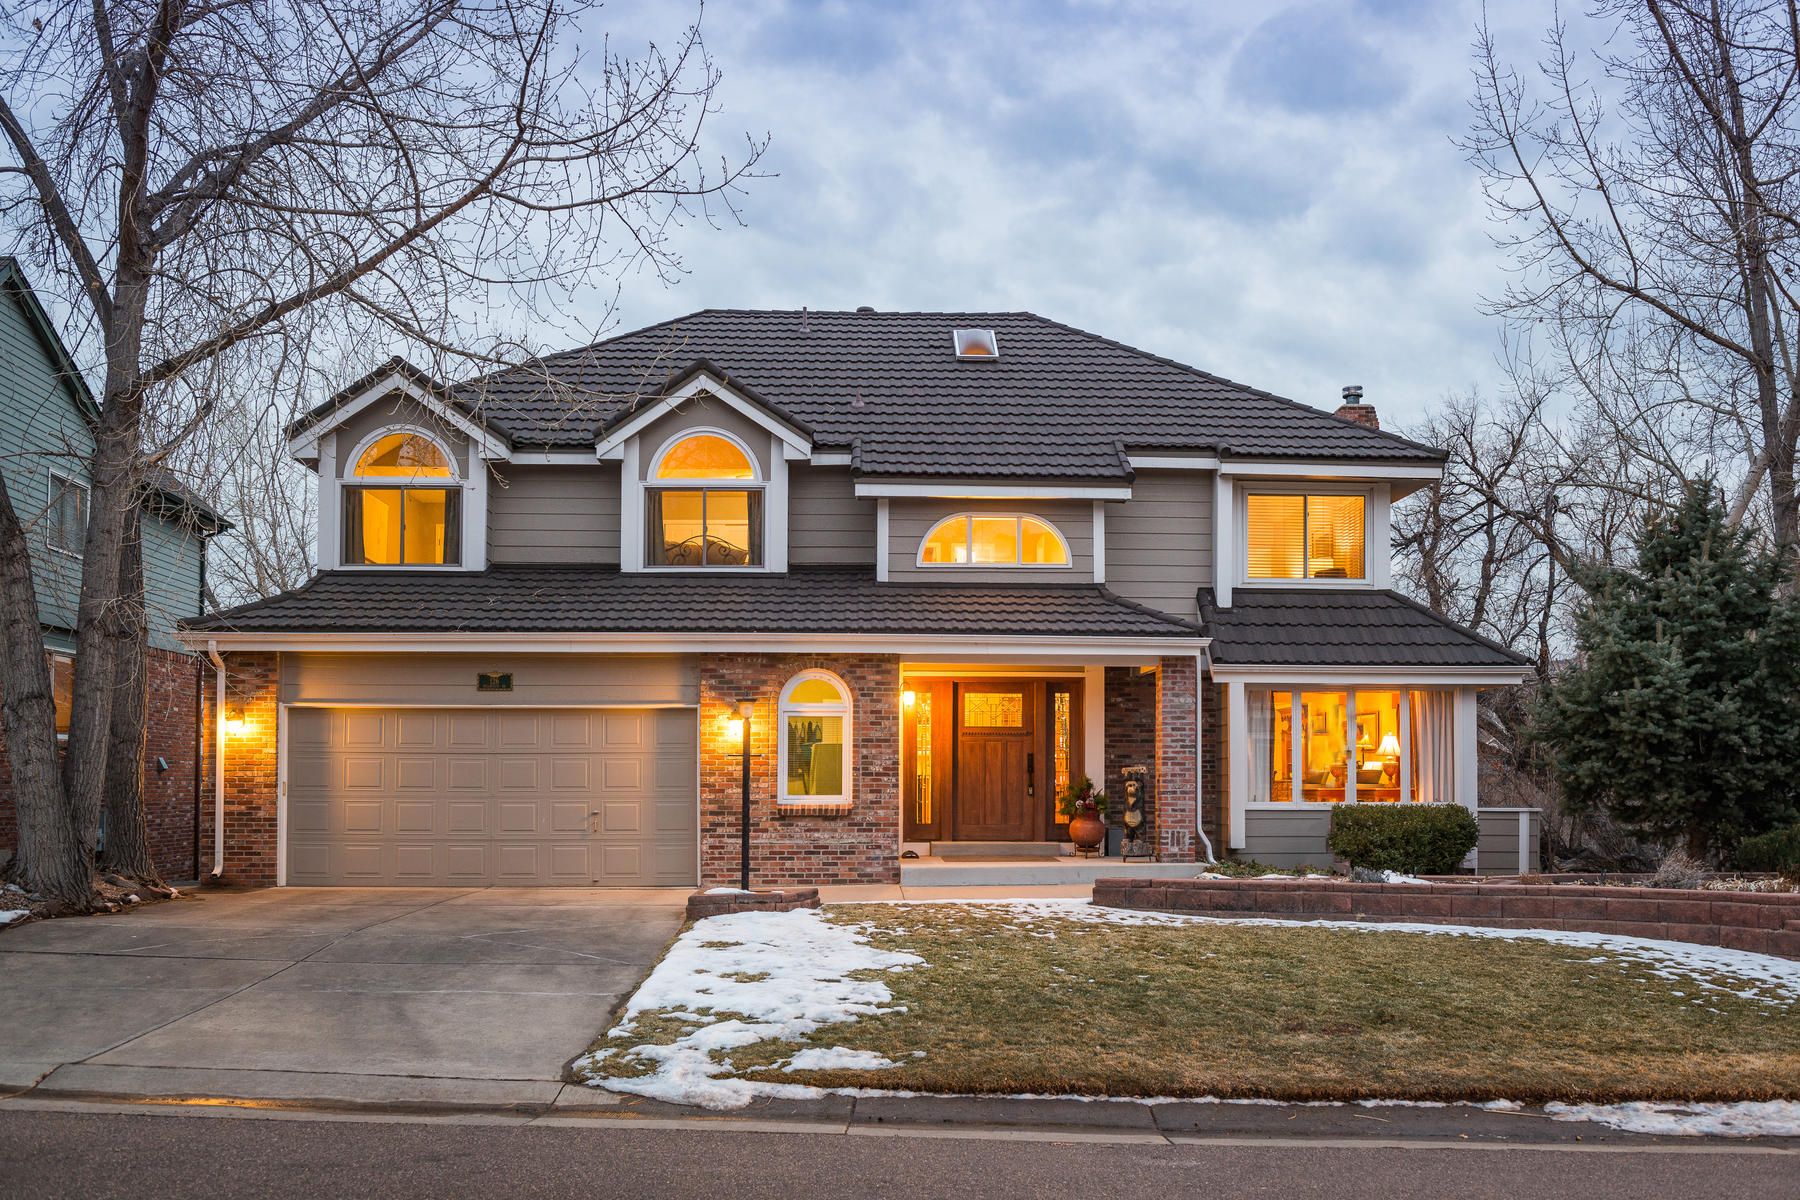 Single Family Home for Active at Beautifully Updated Home in the Valley that Backs Onto Open Space 126 Willowleaf Dr Littleton, Colorado 80127 United States